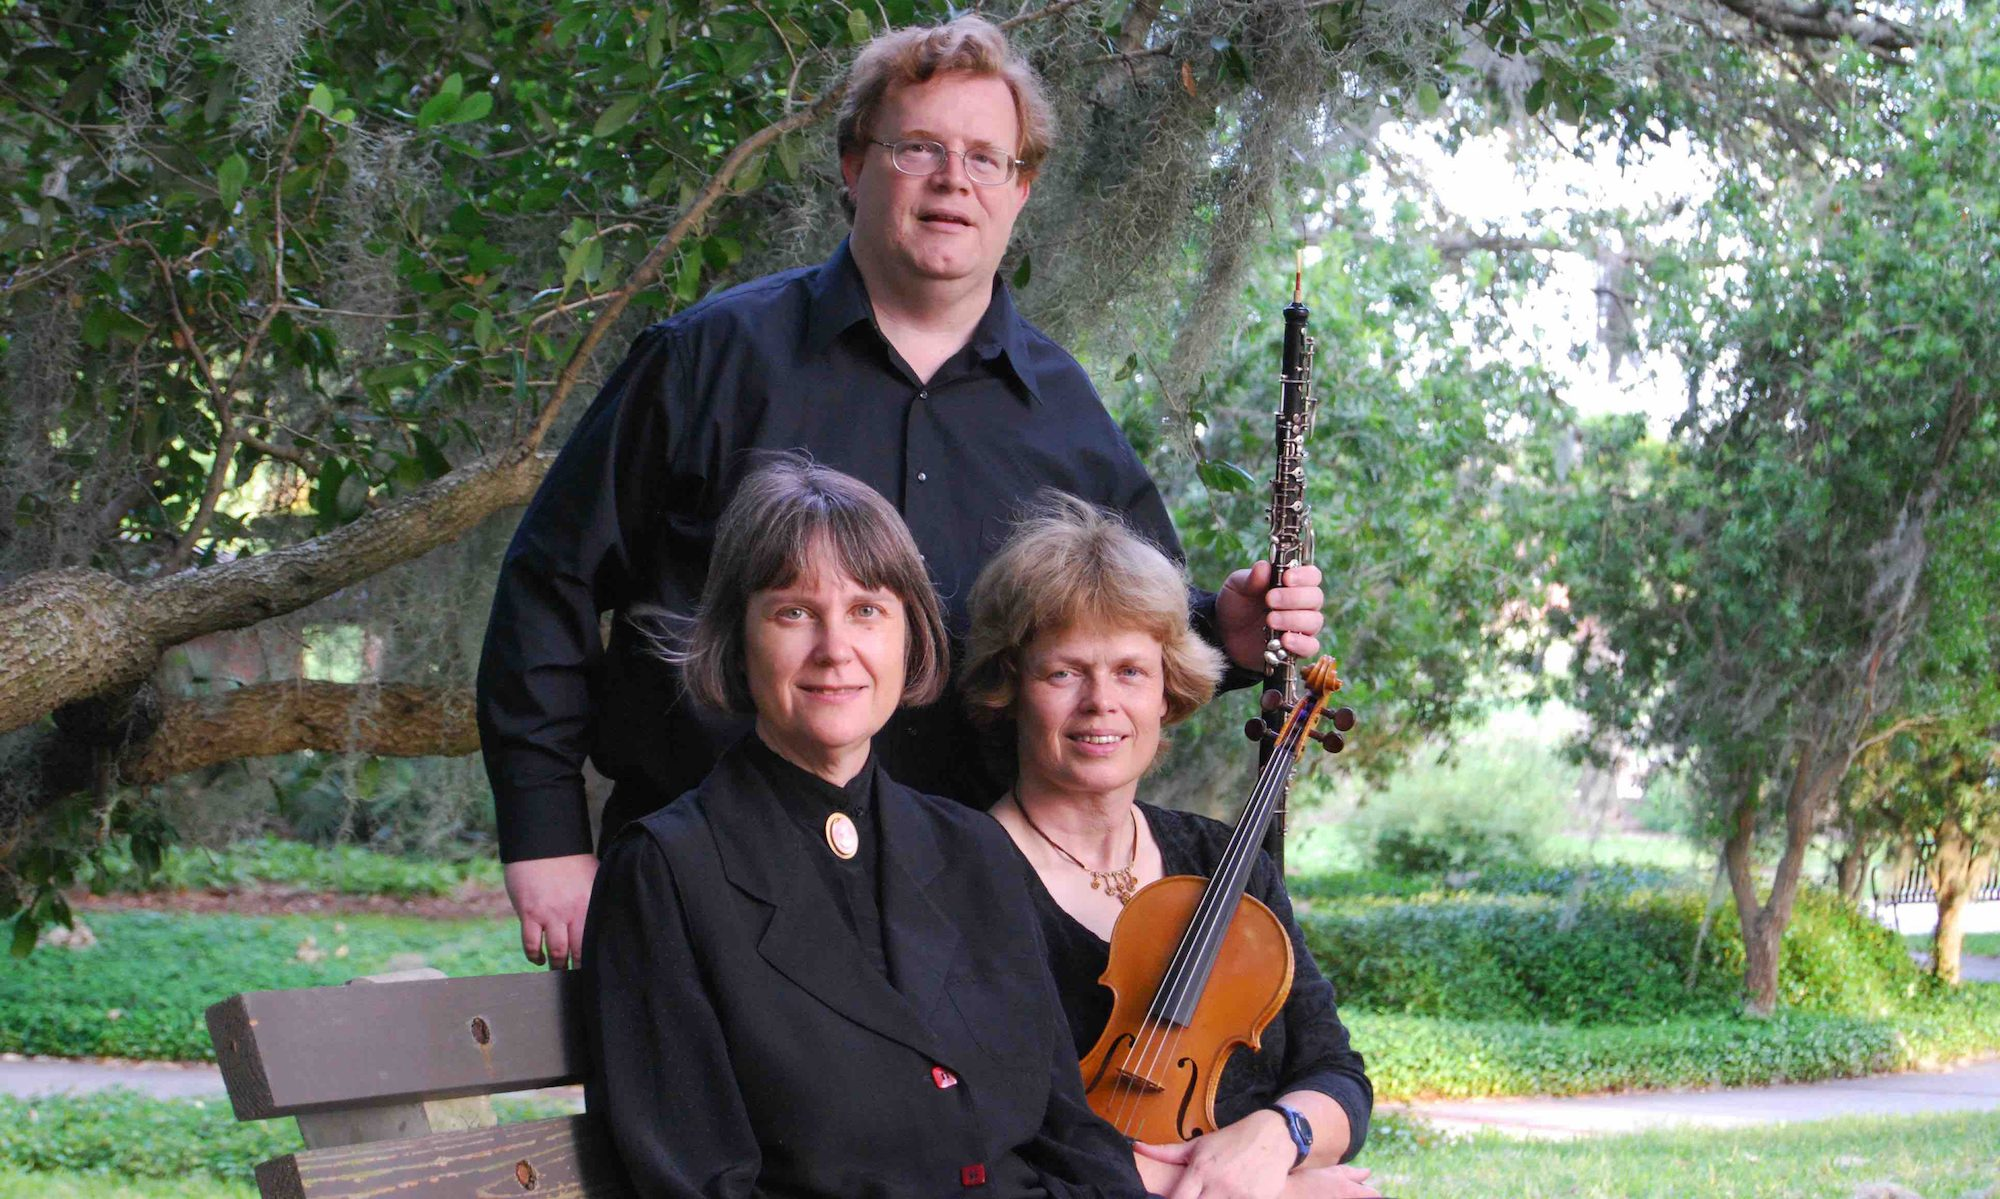 The Alachua Consort